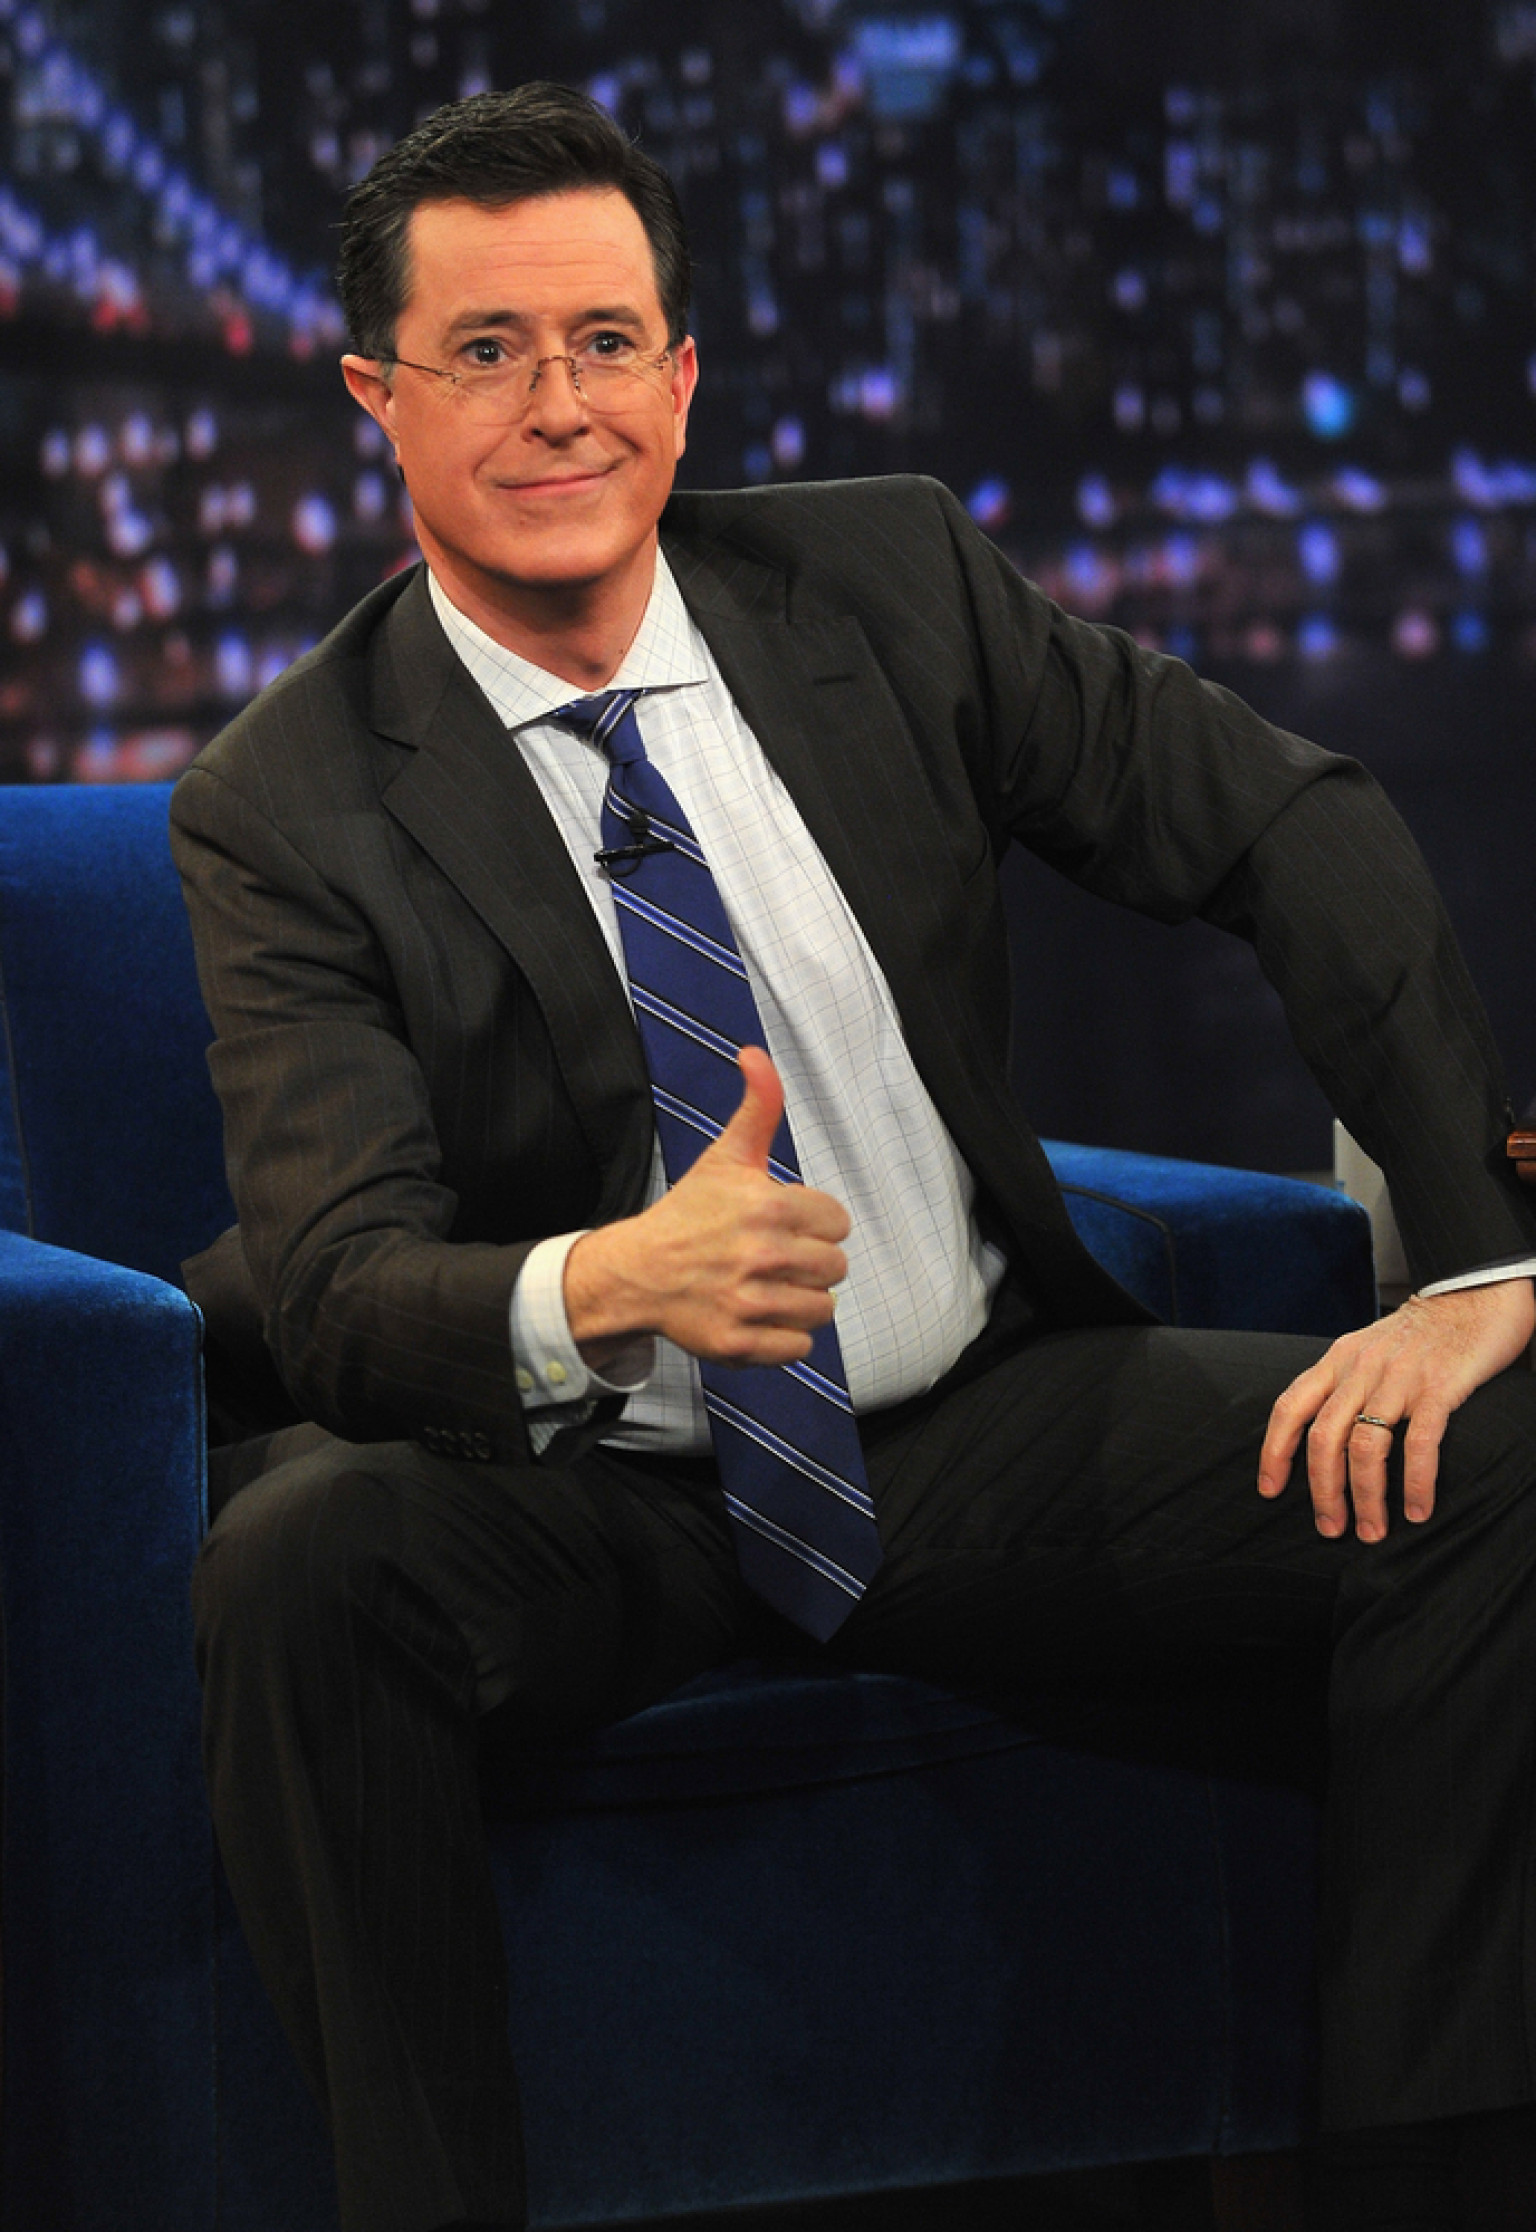 Stephen Colbert wallpapers High Resolution and Quality Download 1536x2232